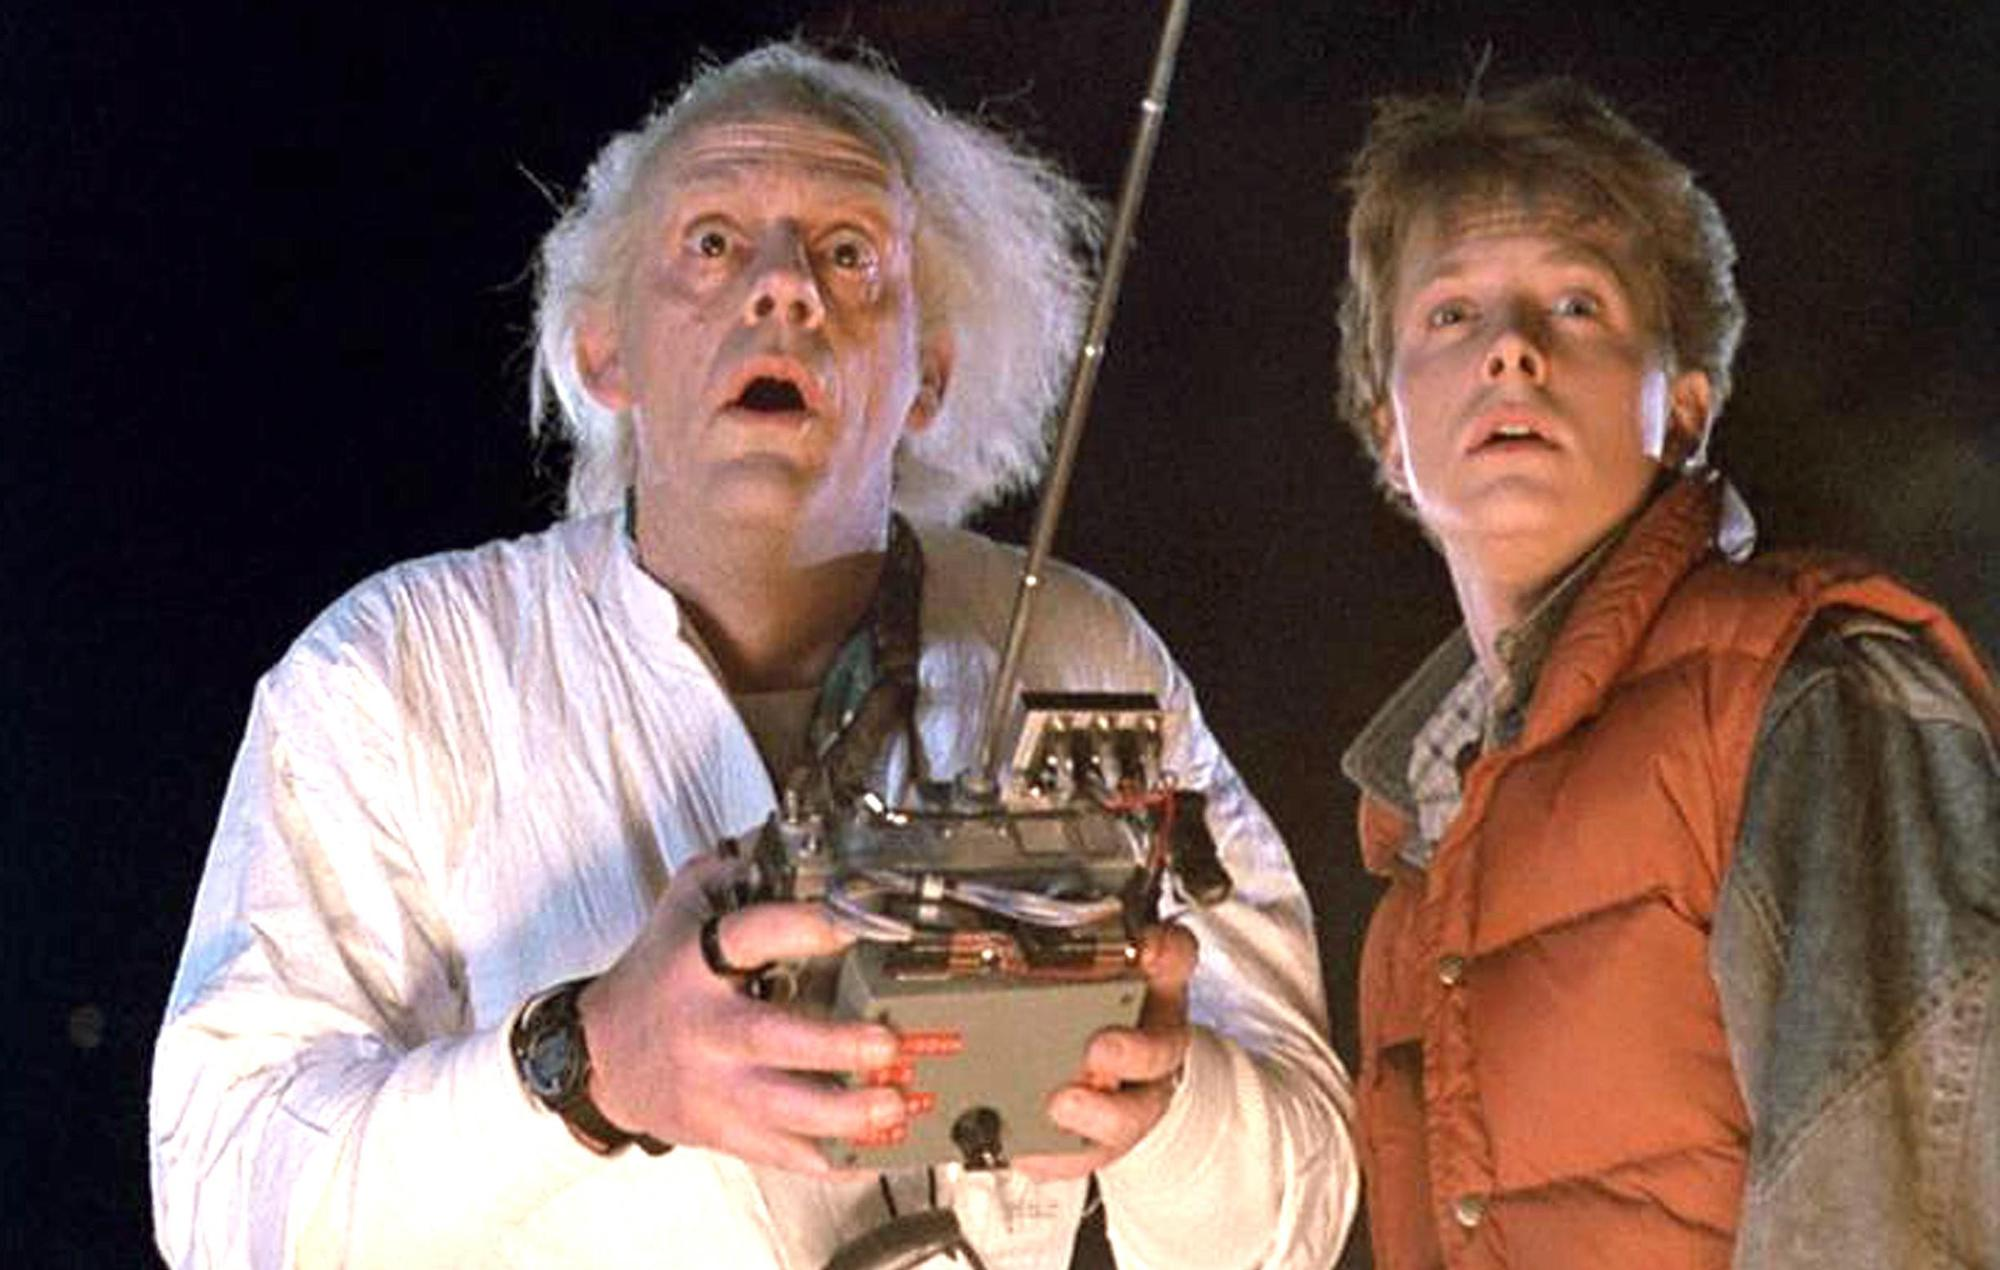 Back to the future: five questions to help you jump ahead in 2020